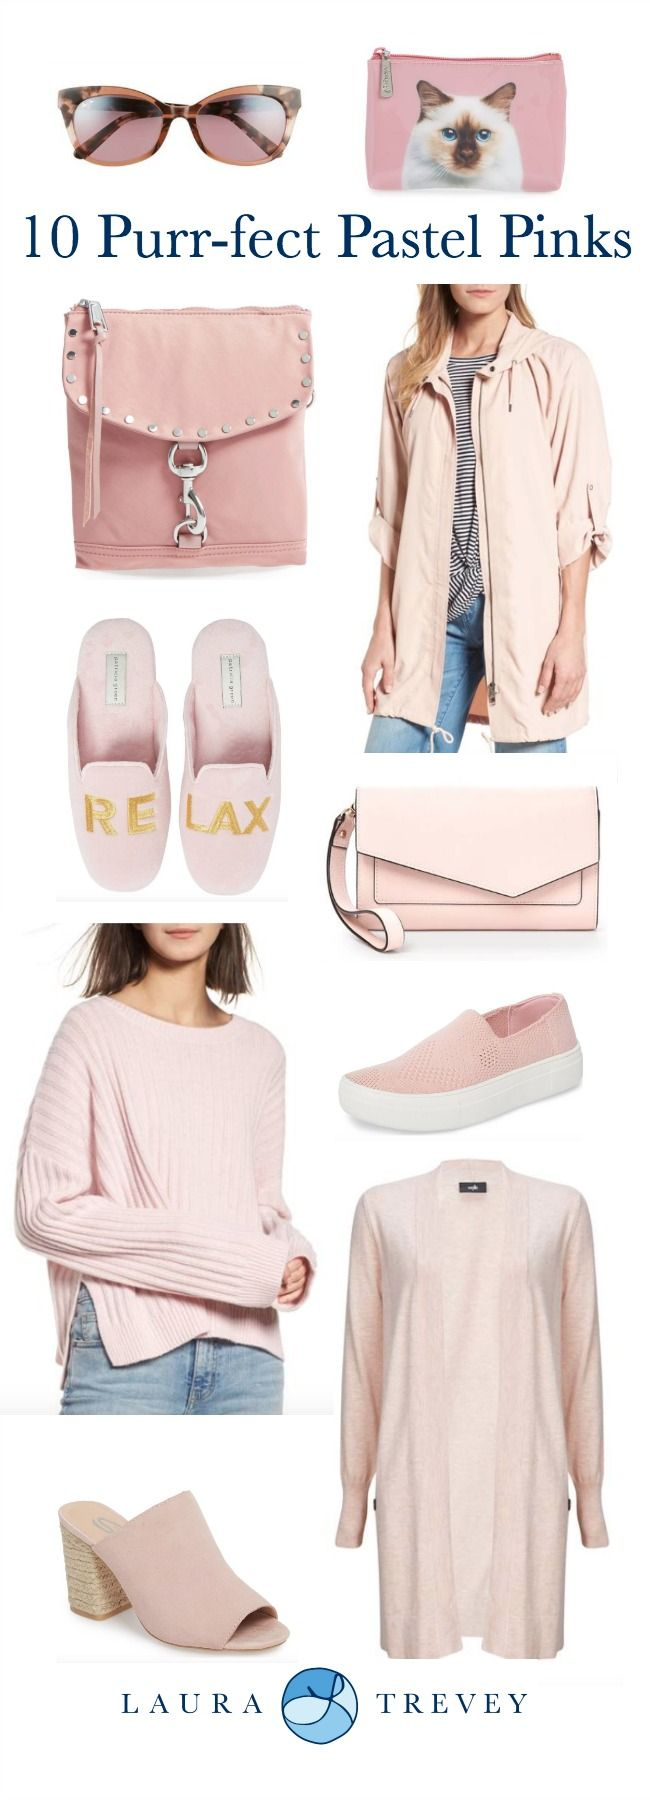 My new color crush, Spring Pastel Pinks. I spied the new Rebecca Minkoff crossbody bag which is to die for and it goes purr-fectly with this cozy cashmere sweater. Throw on a pair of jeans and these chic sueded slides, and you're out the door. Click on products below to shop.